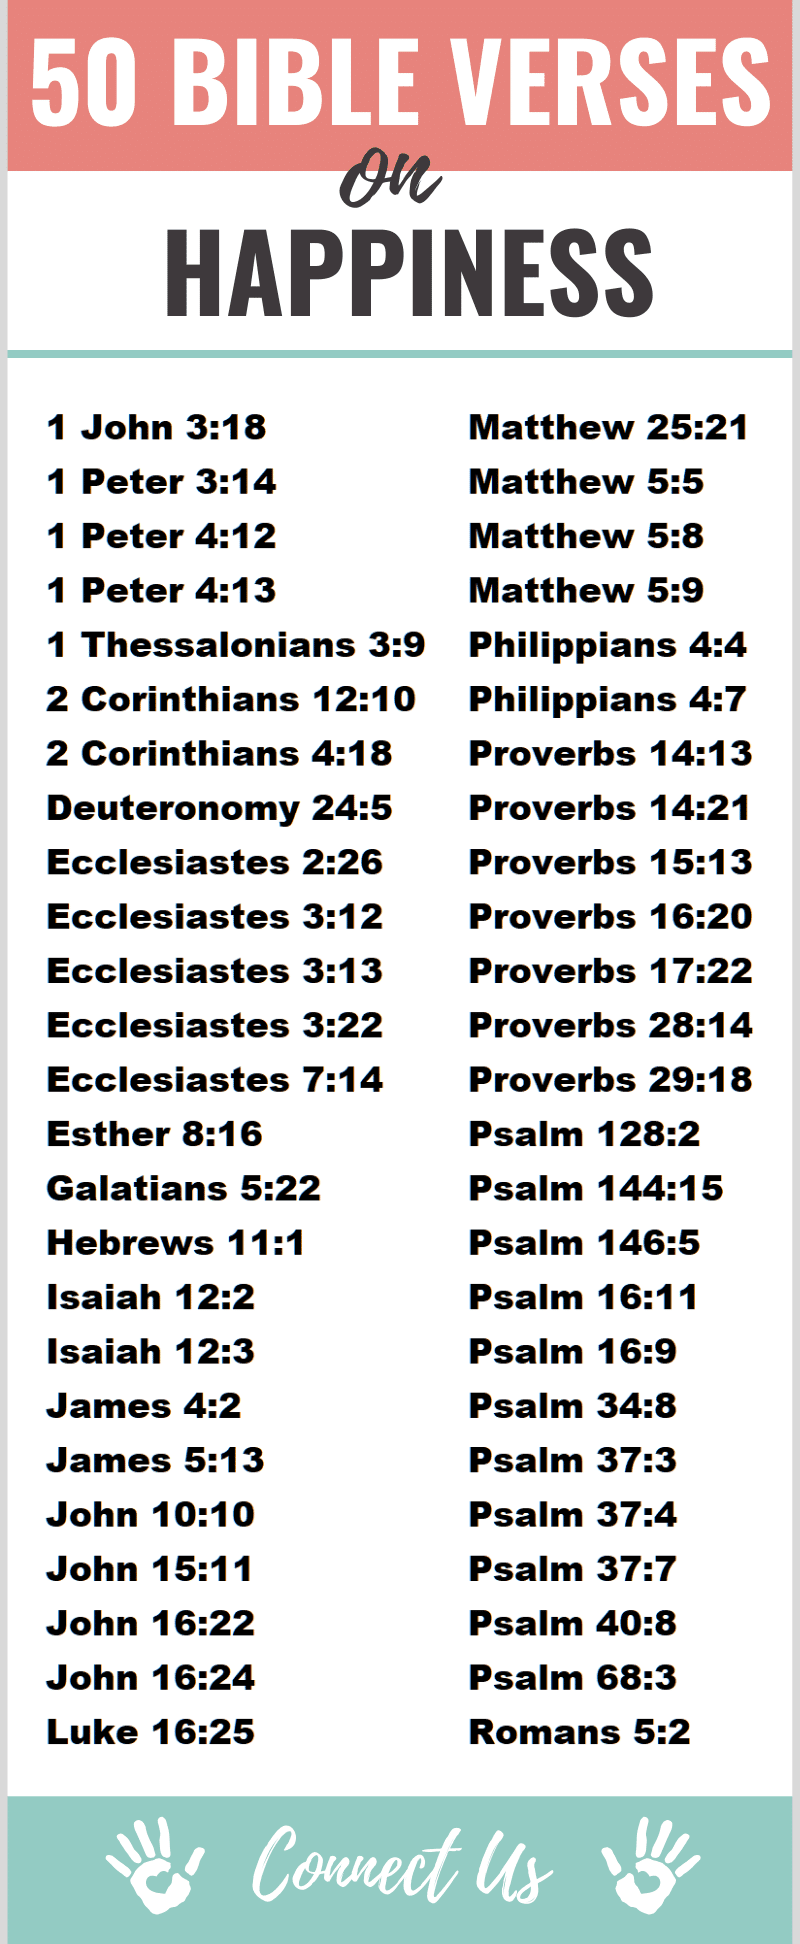 Bible Verses on Happiness